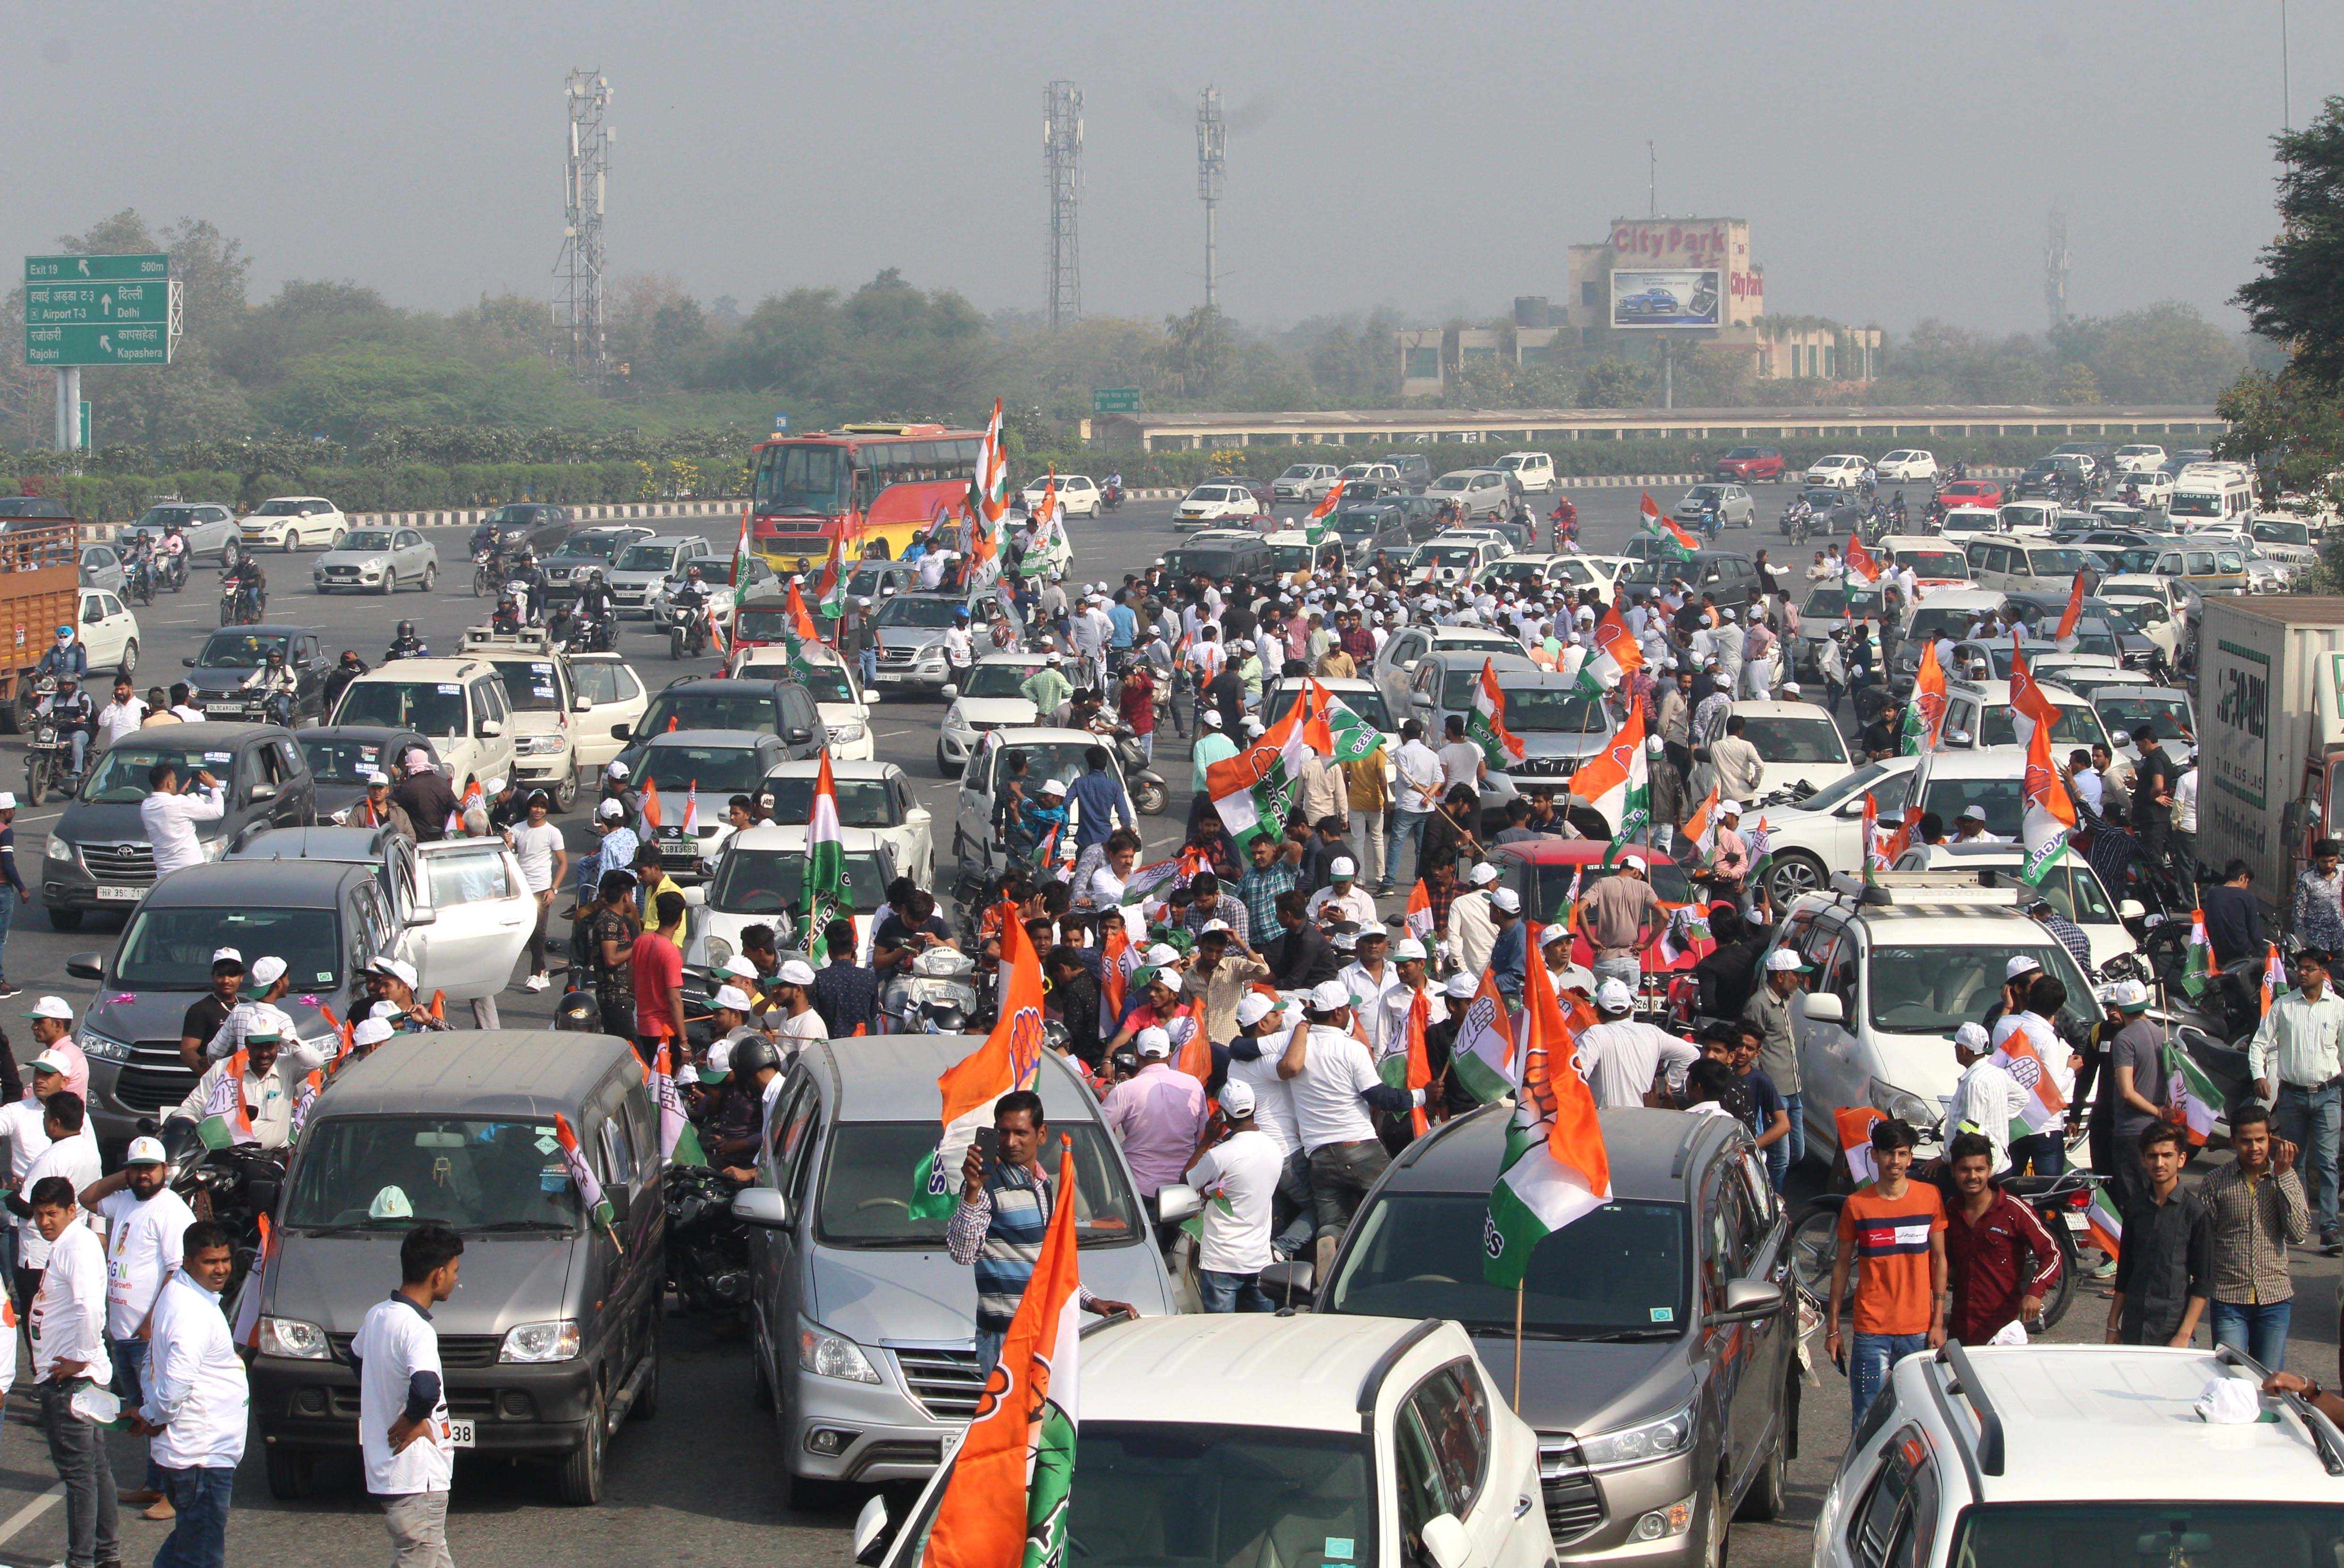 Leaders and supporters of Congress during Parivartan Bus Yatra at Delhi-Gurugram expressway near Ambience mall on March 26, 2019 in Gurugram, India.